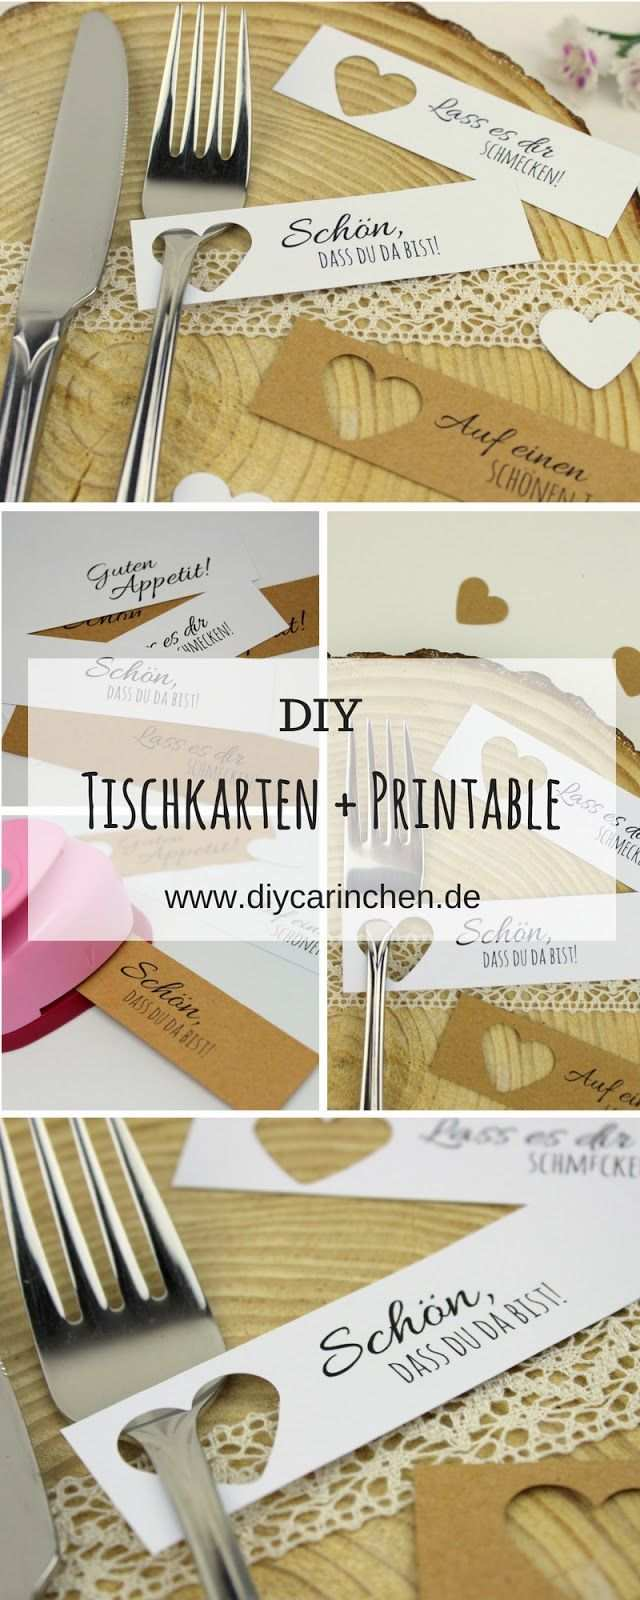 Simply Make Diy Place Cards Yourself Free Templates Wedding